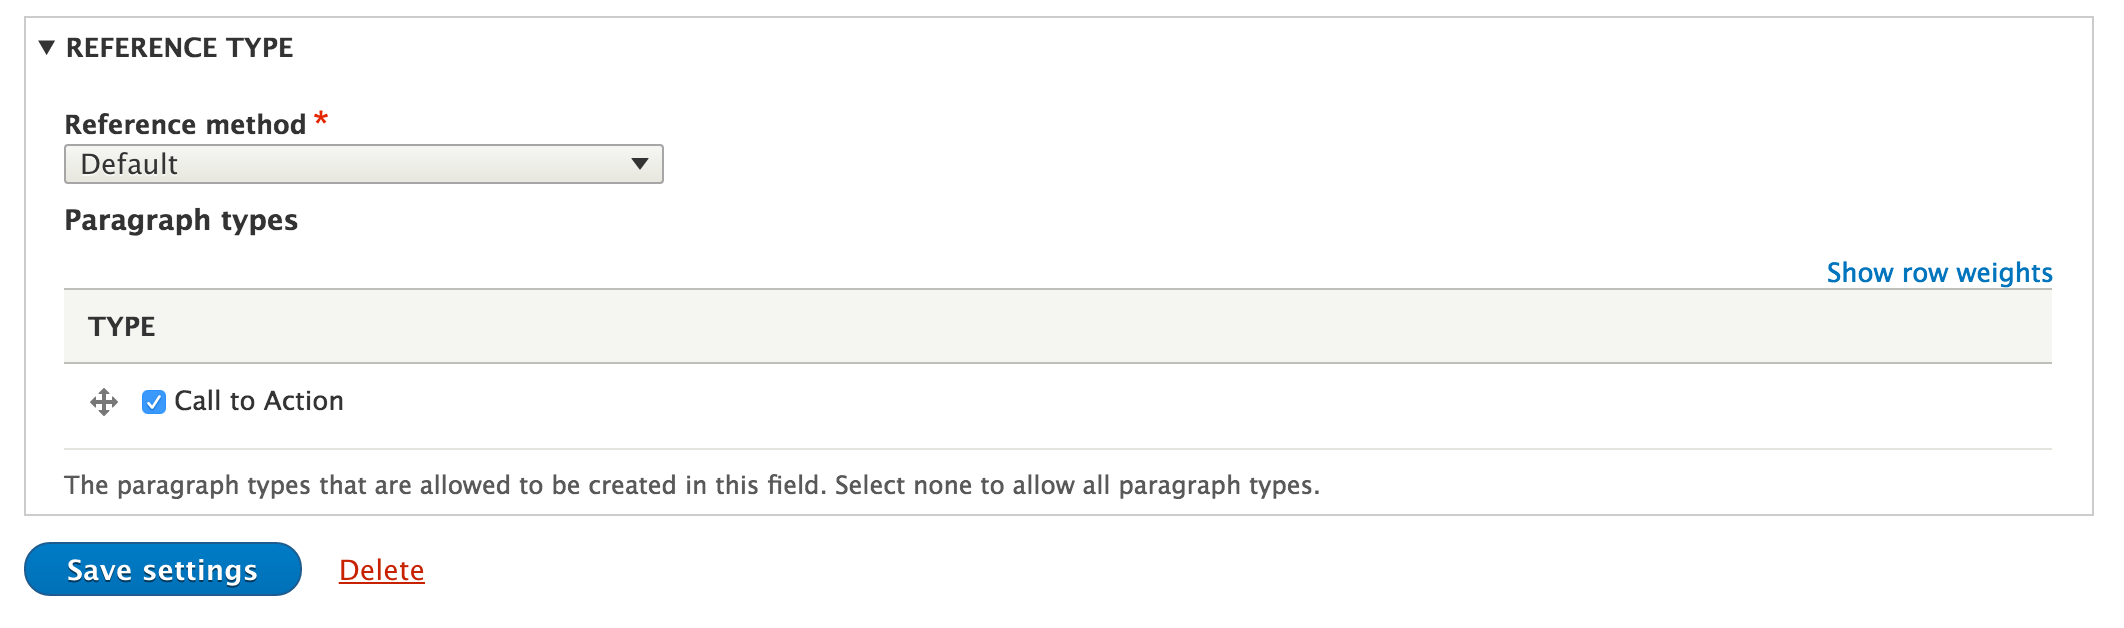 Reference types for the paragraph field